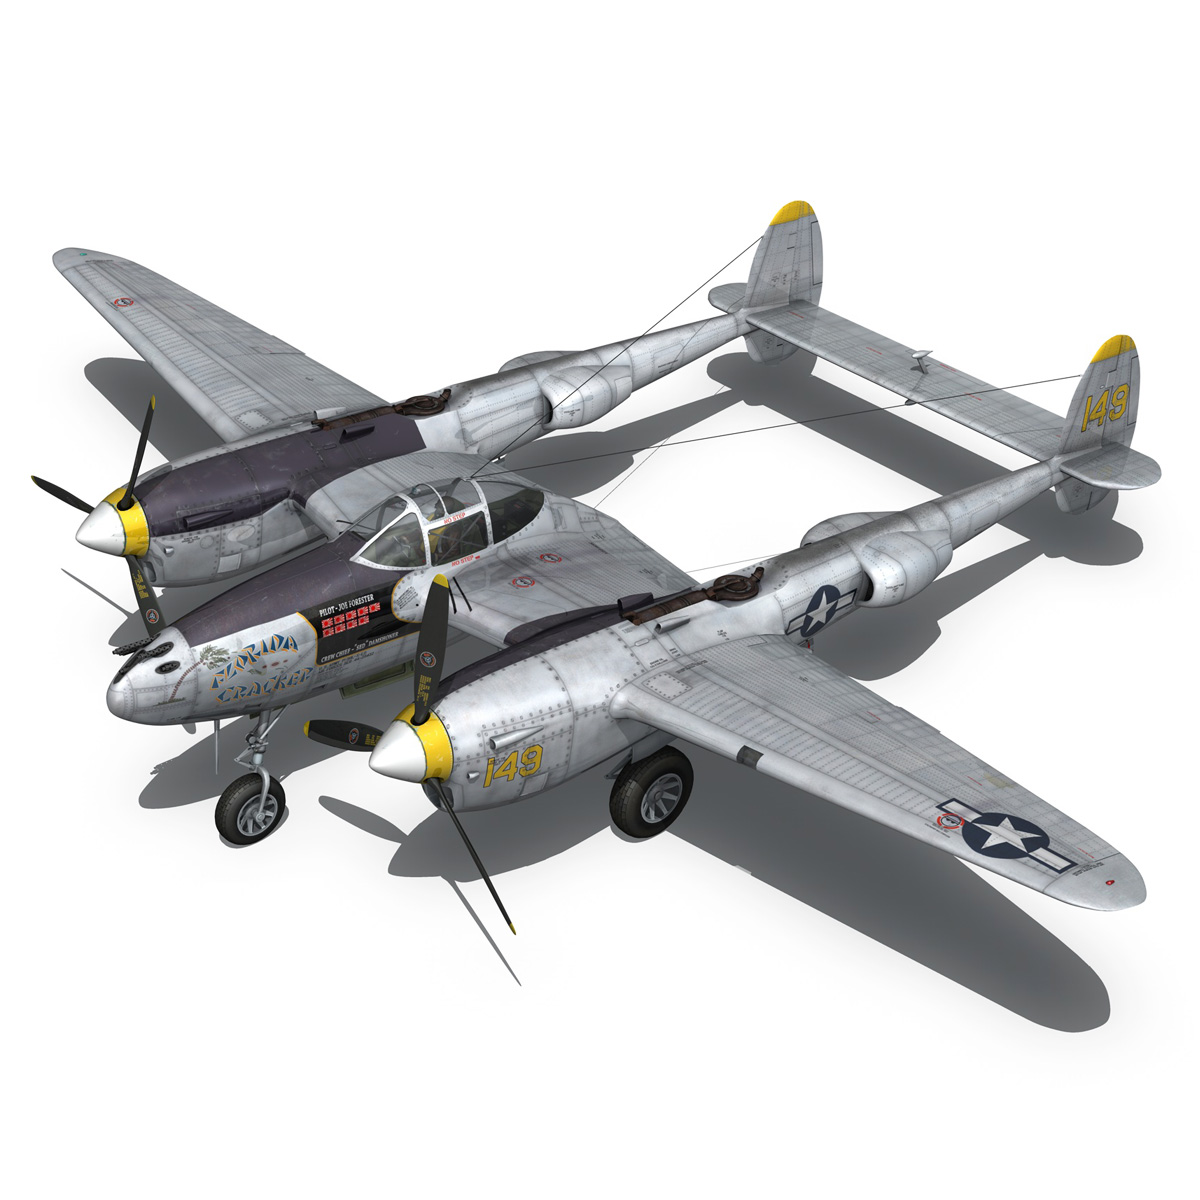 lockheed p-38 lightning – florida cracker 3d model fbx c4d lwo obj 279424